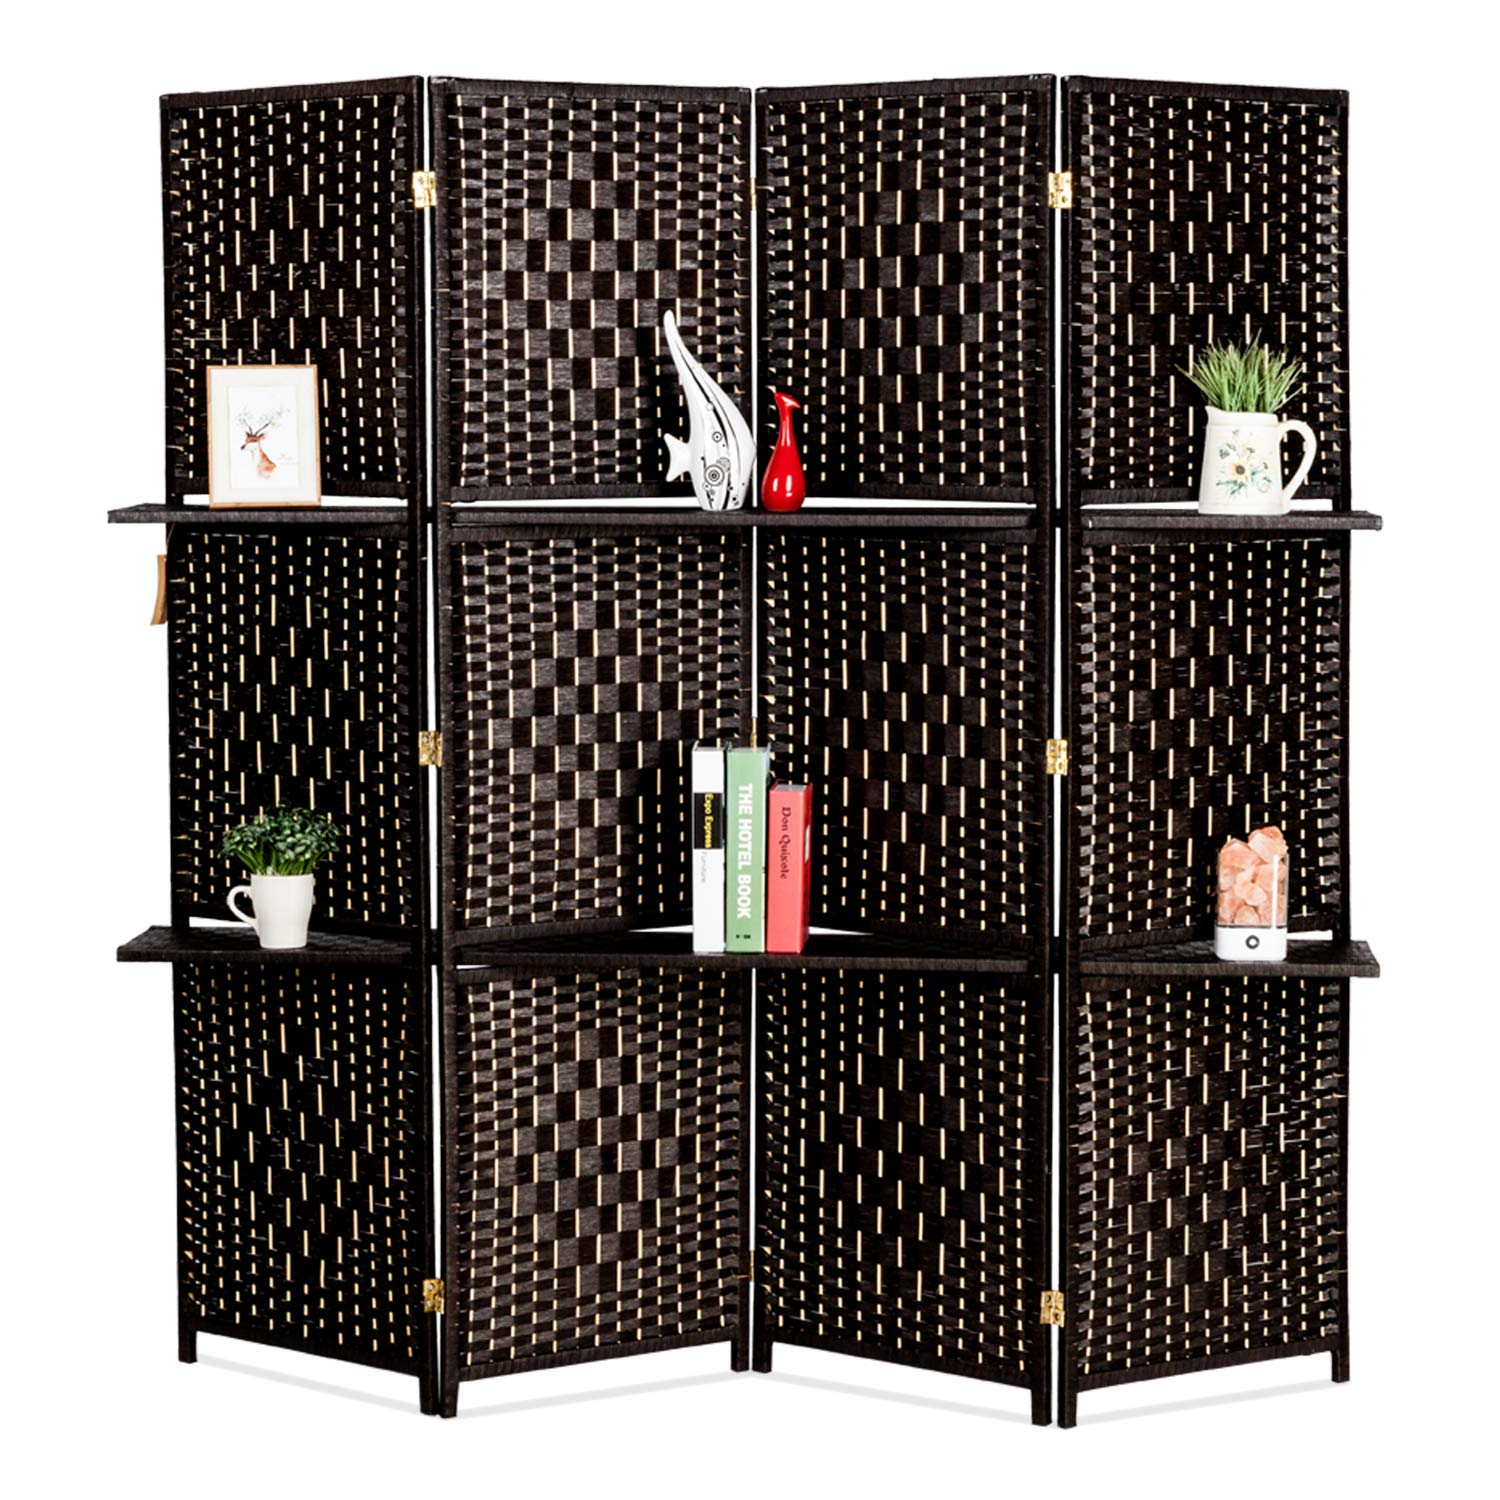 Bonnlo Upgraded Heavy Duty 6FT Tall Rattan Room Divider Screens with Partition Wall 2 Display Shelves, Indoor Folding Screen Dual-Sided Hinges for Home Office (4 Panels) by Bonnlo